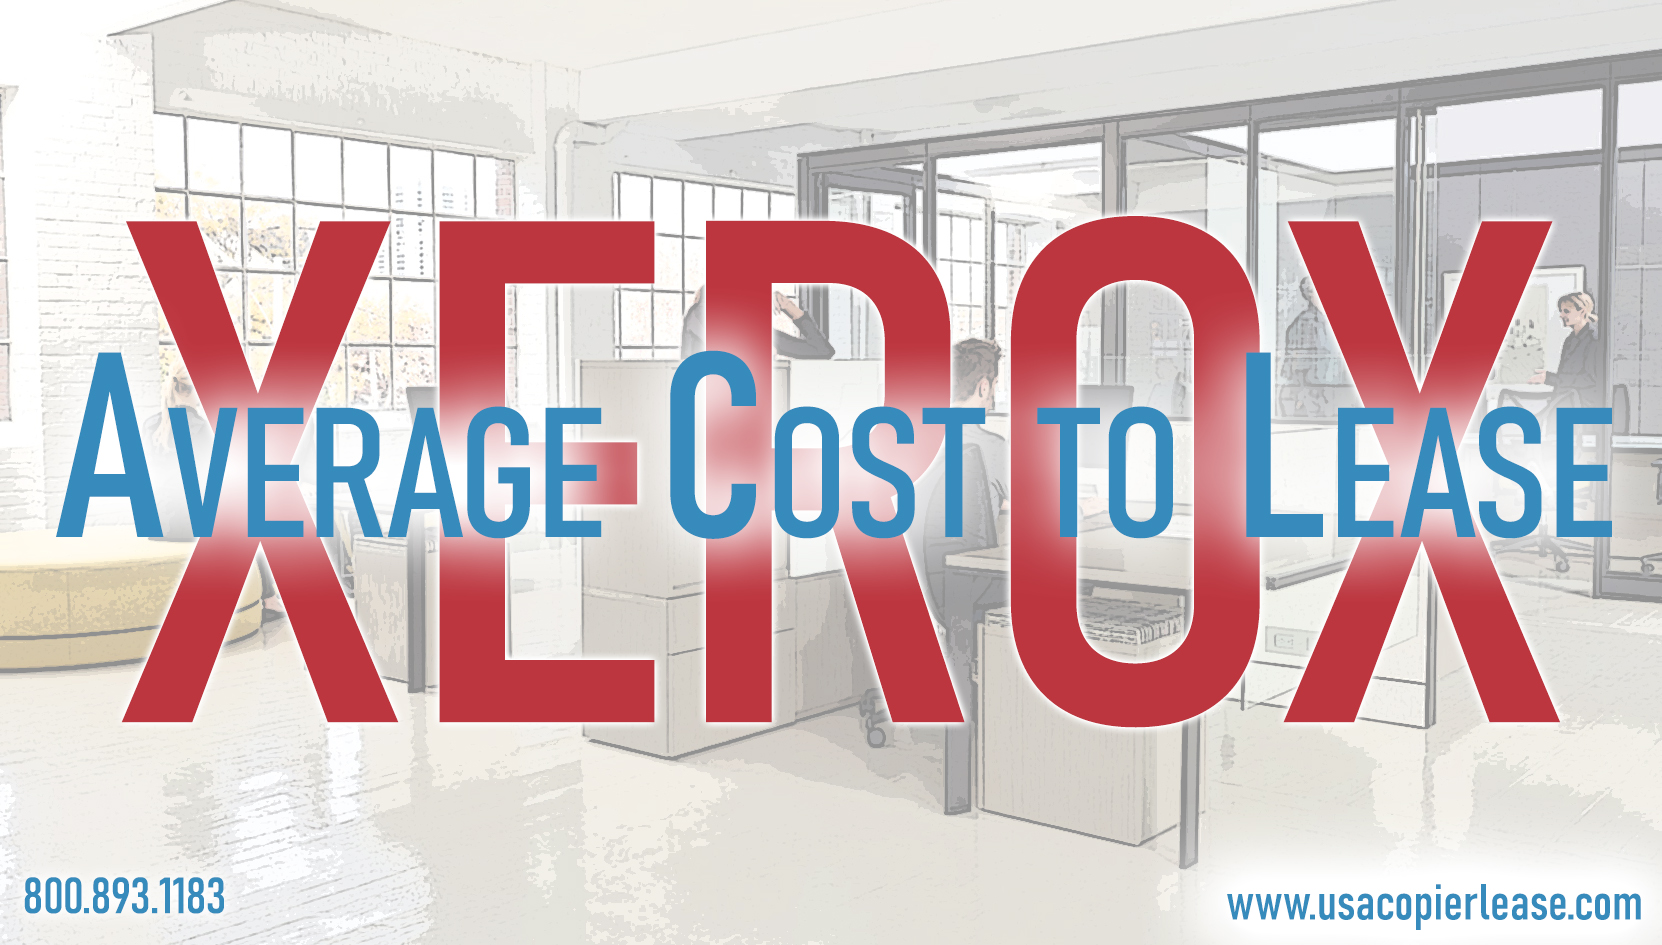 What is the average cost to lease a copier?